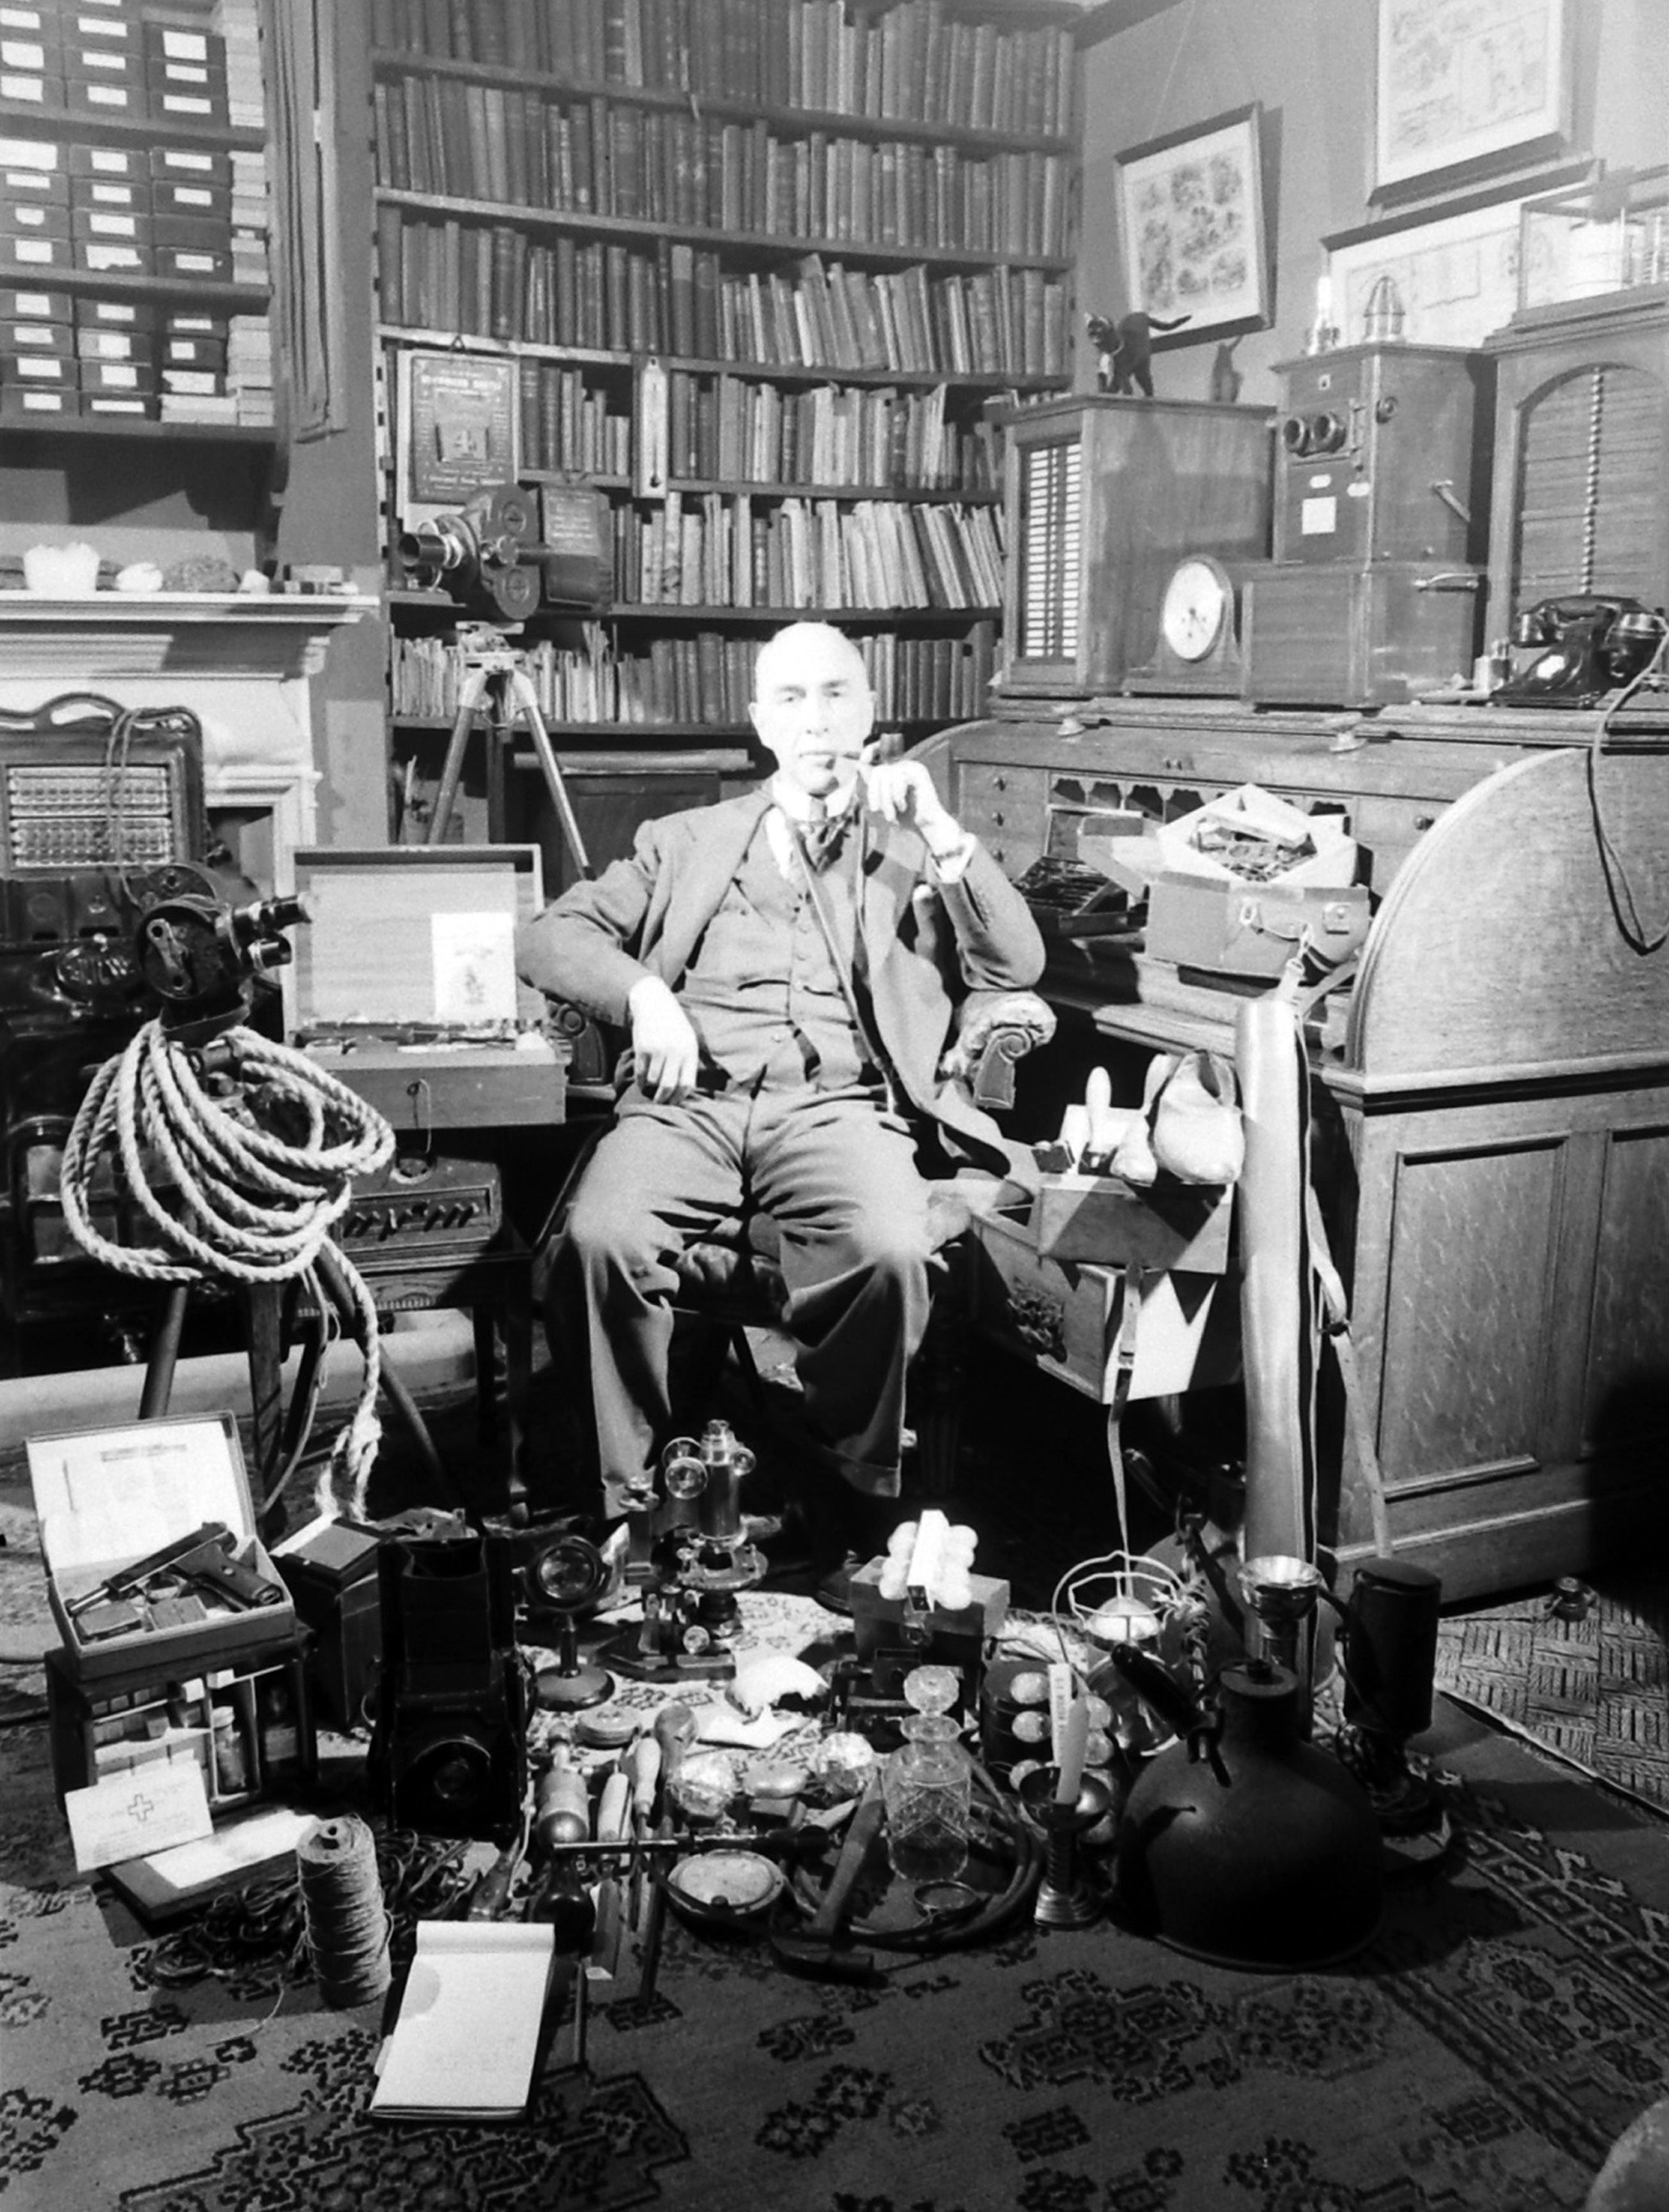 Paranormal researcher Harry Price at the Borley Rectory, known as the most haunted house in England, circa 1931.